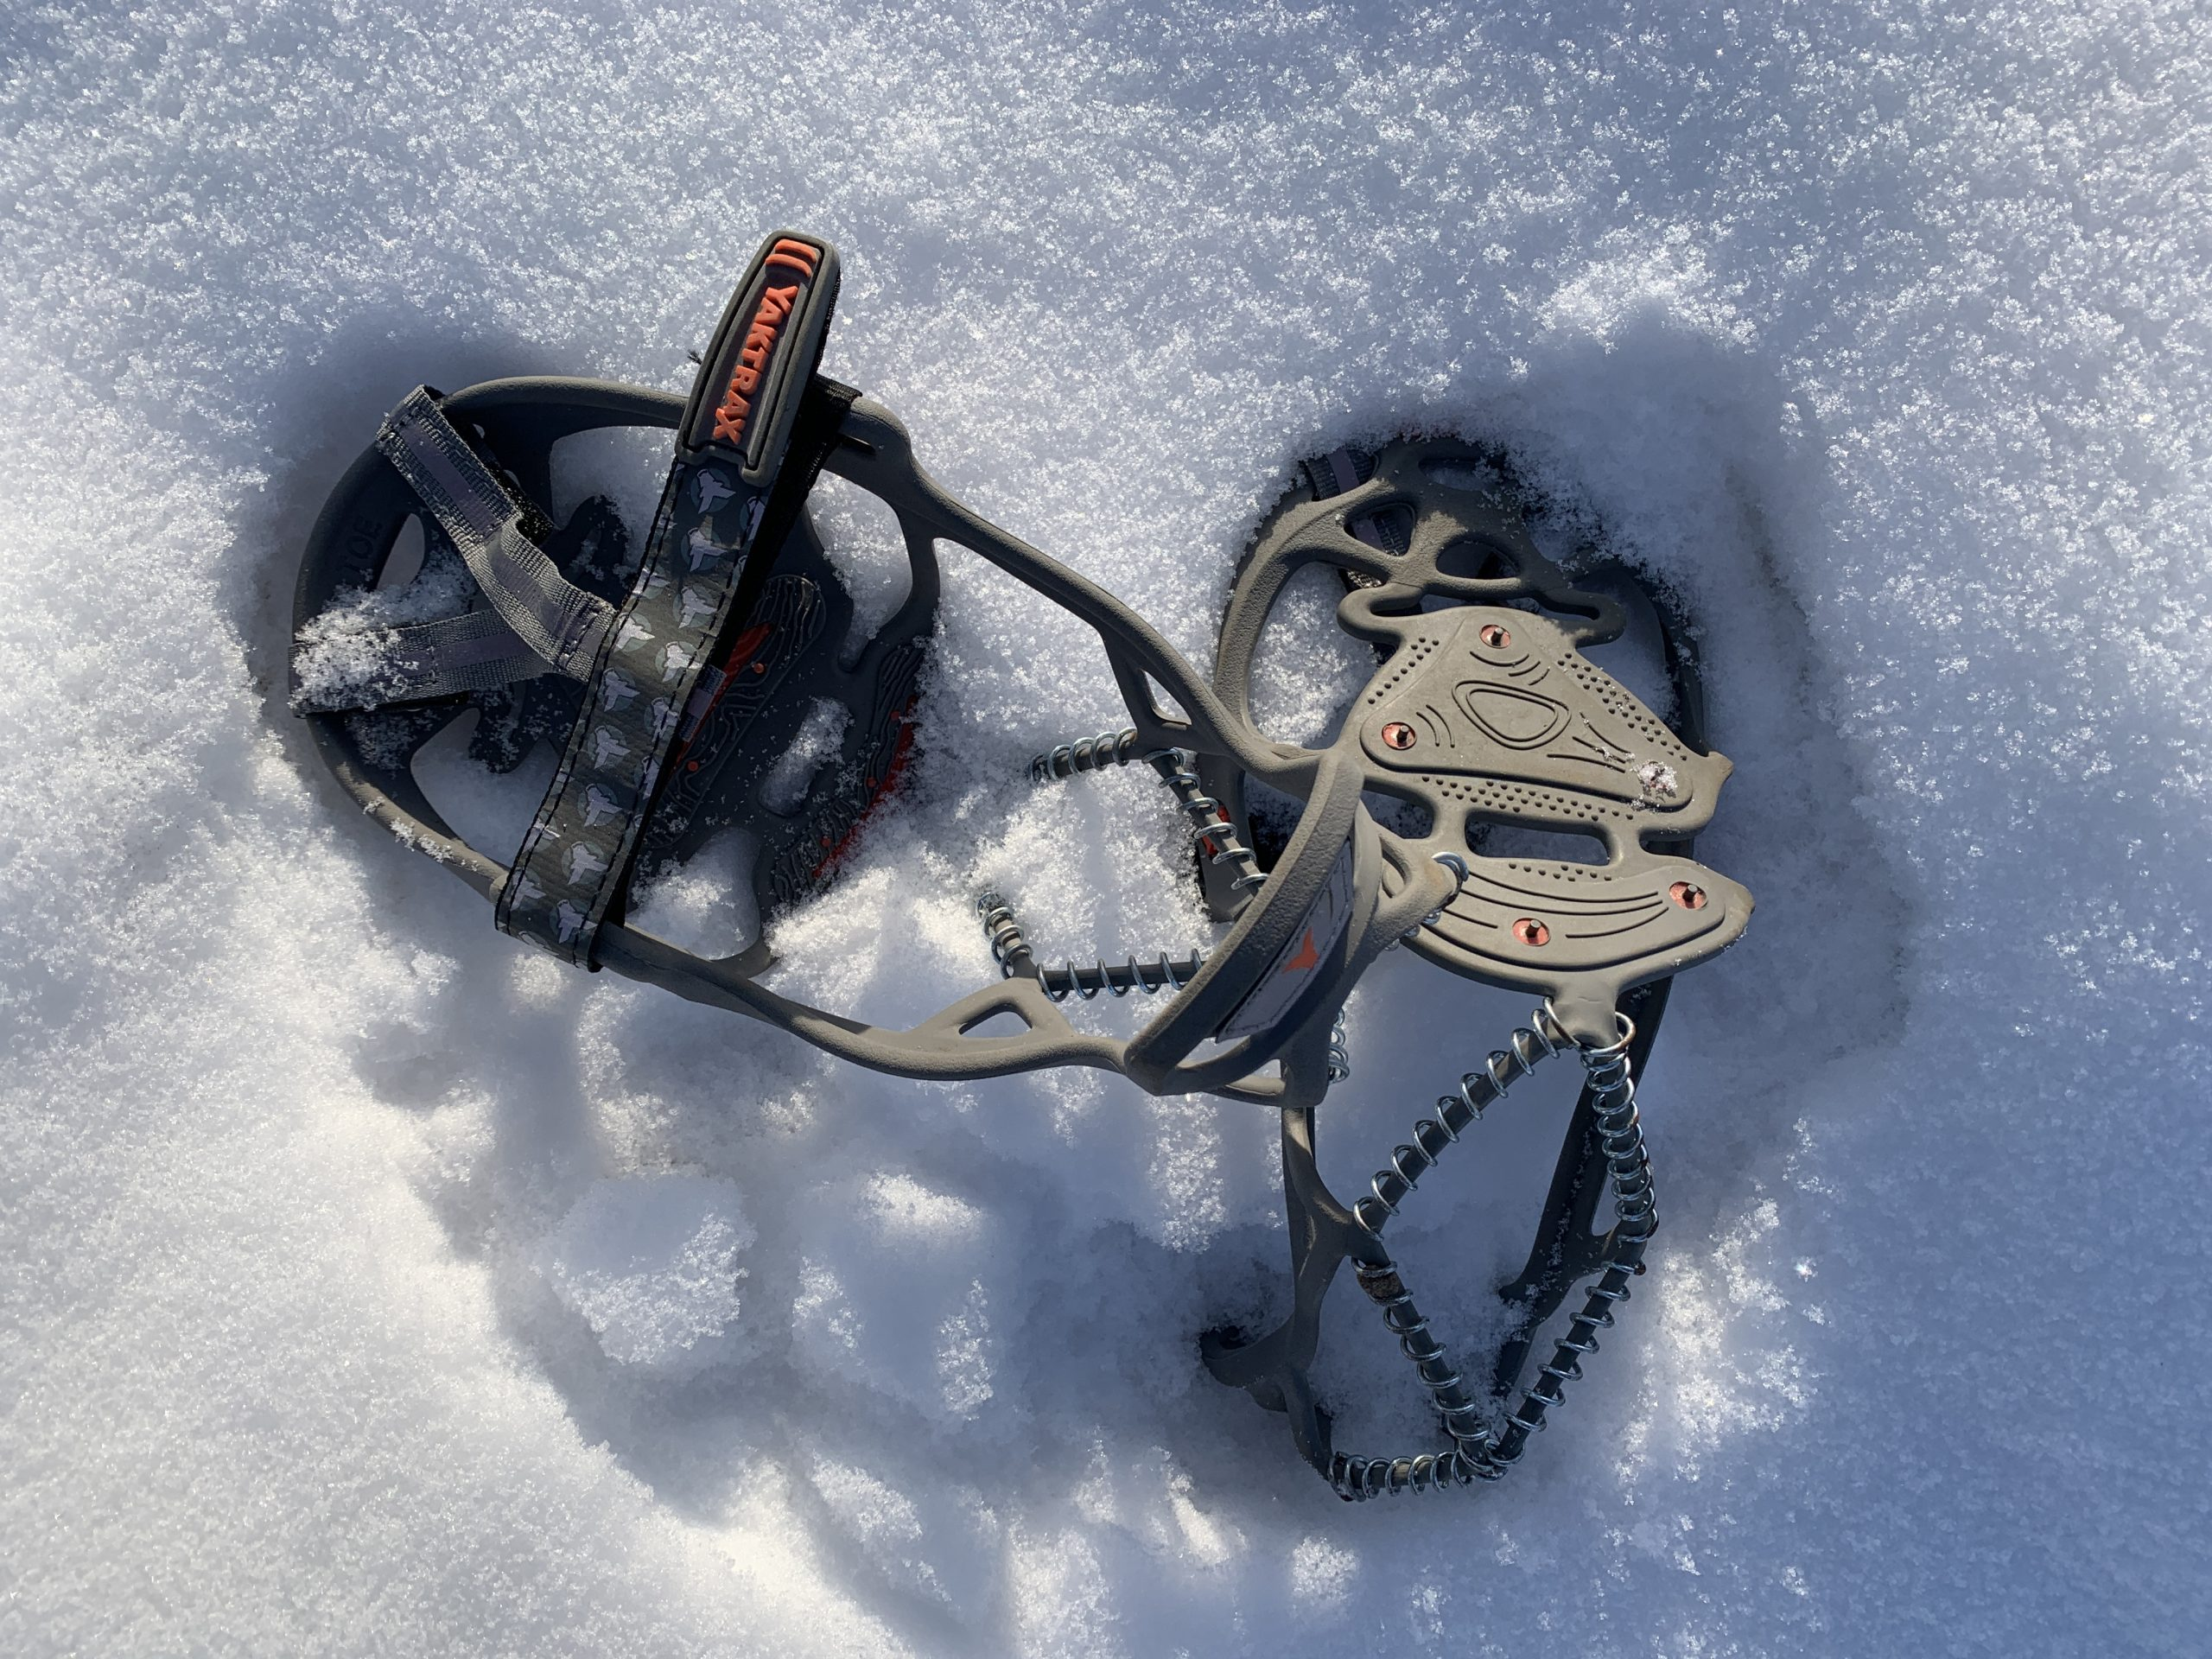 A pair of traction footwear strap-ons rest in fresh snow.